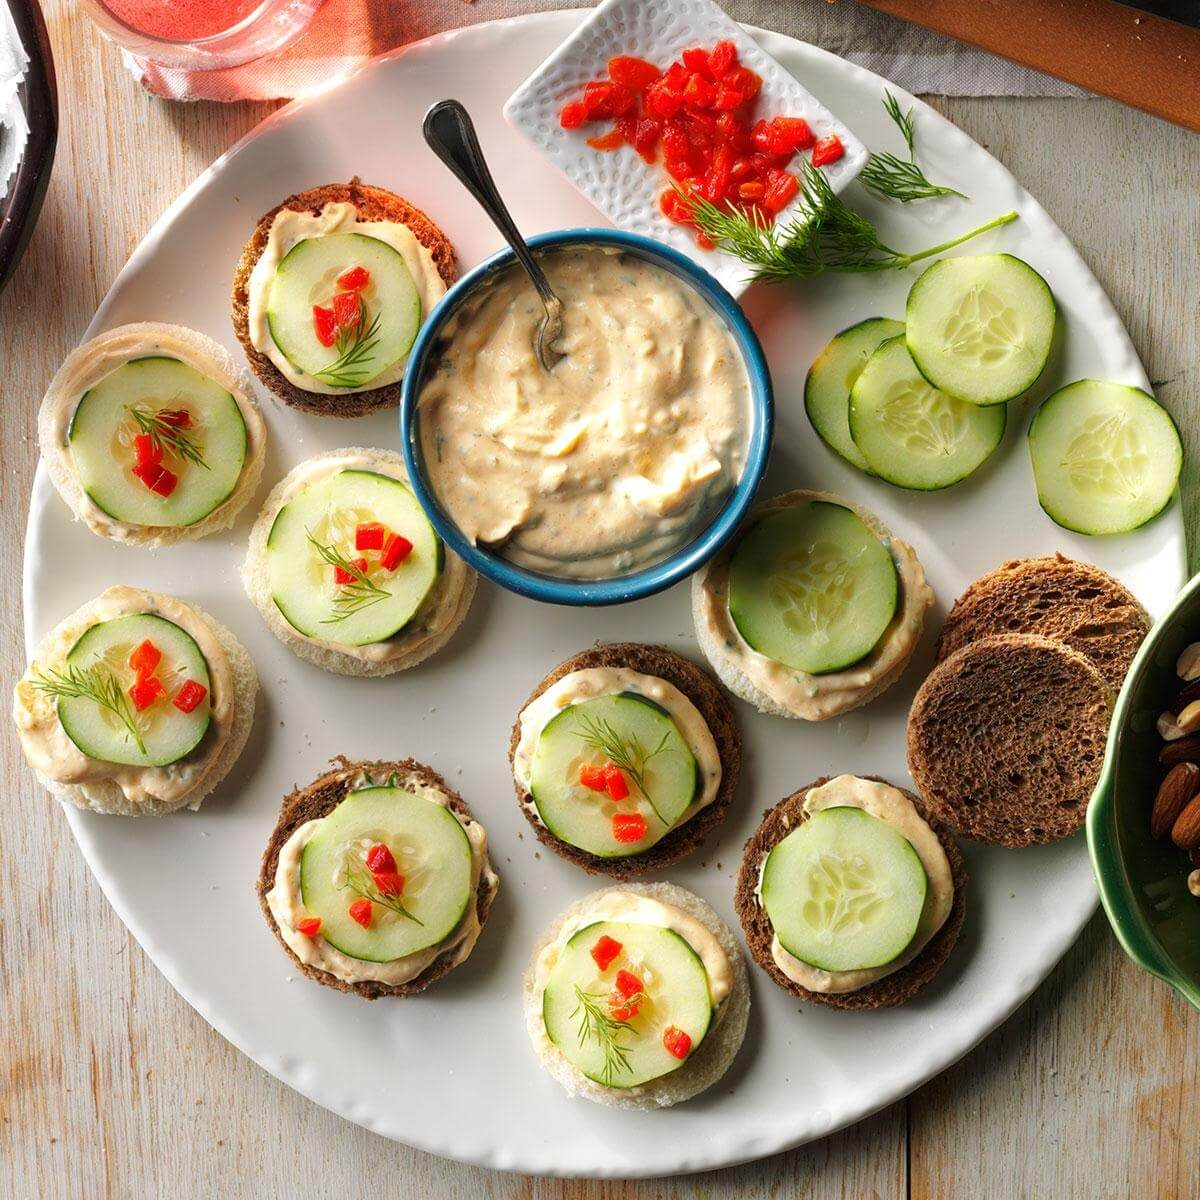 Finger Foods For Parties: 70 Easy Party Appetizers To Feed A Crowd